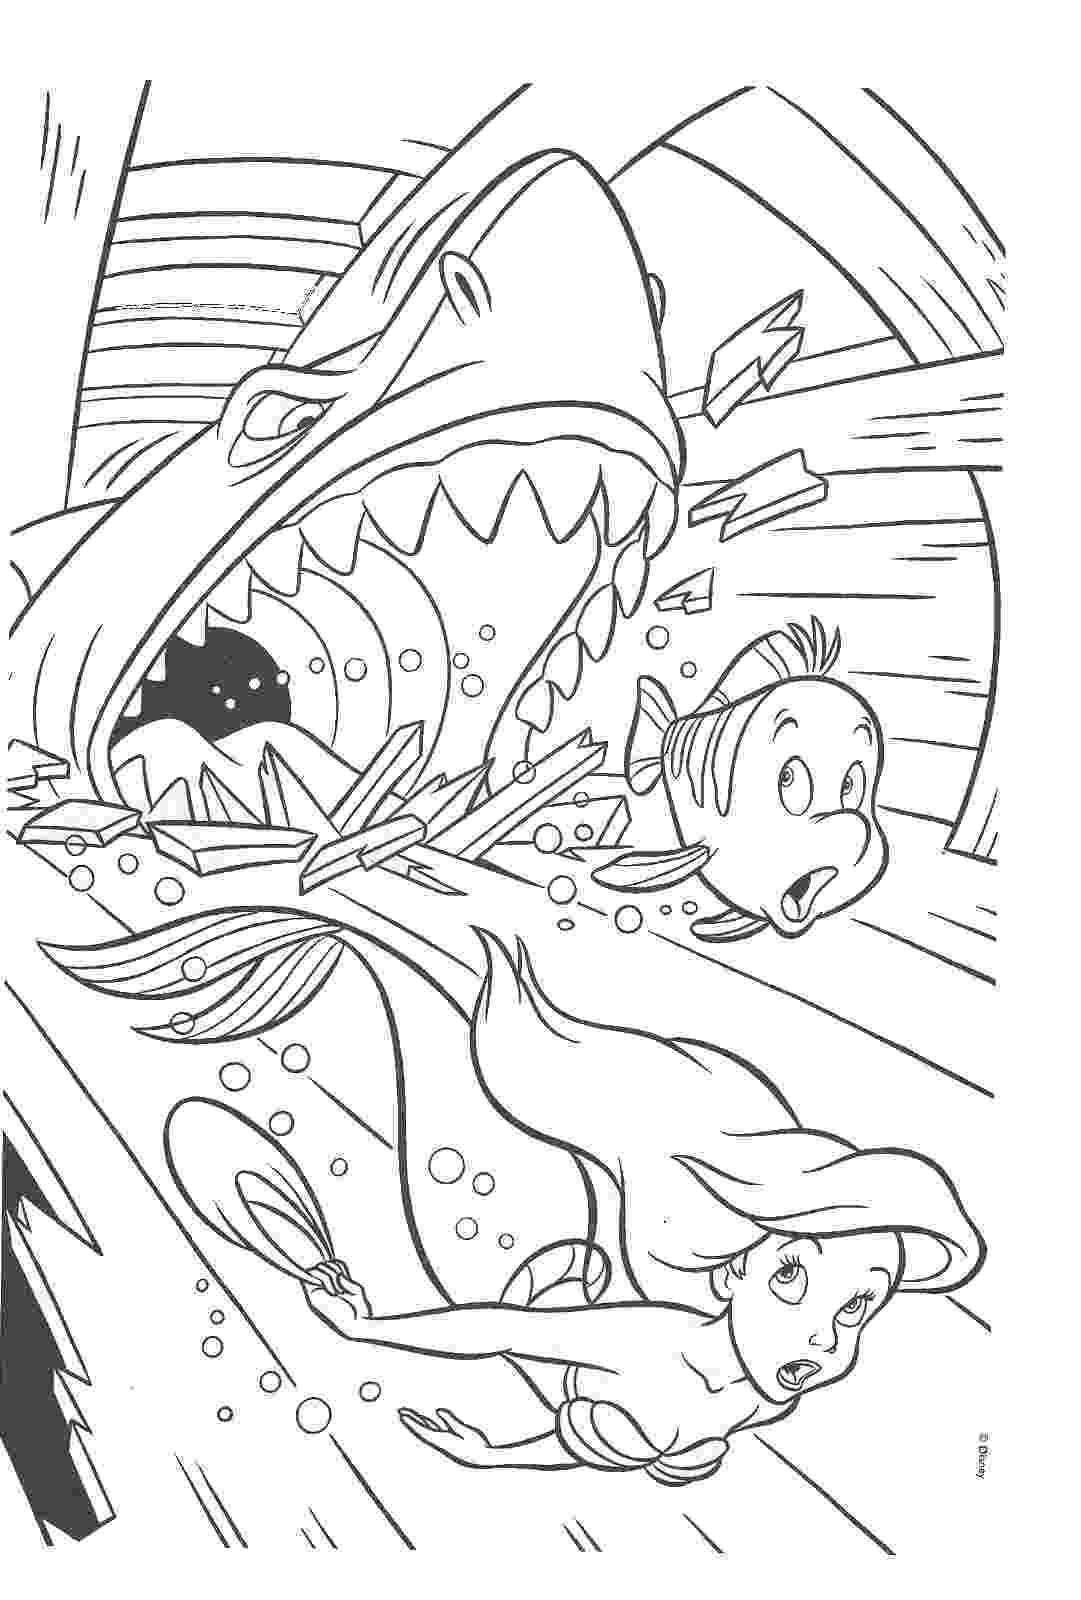 the little mermaid coloring page the little mermaid coloring pages allkidsnetworkcom page little the coloring mermaid